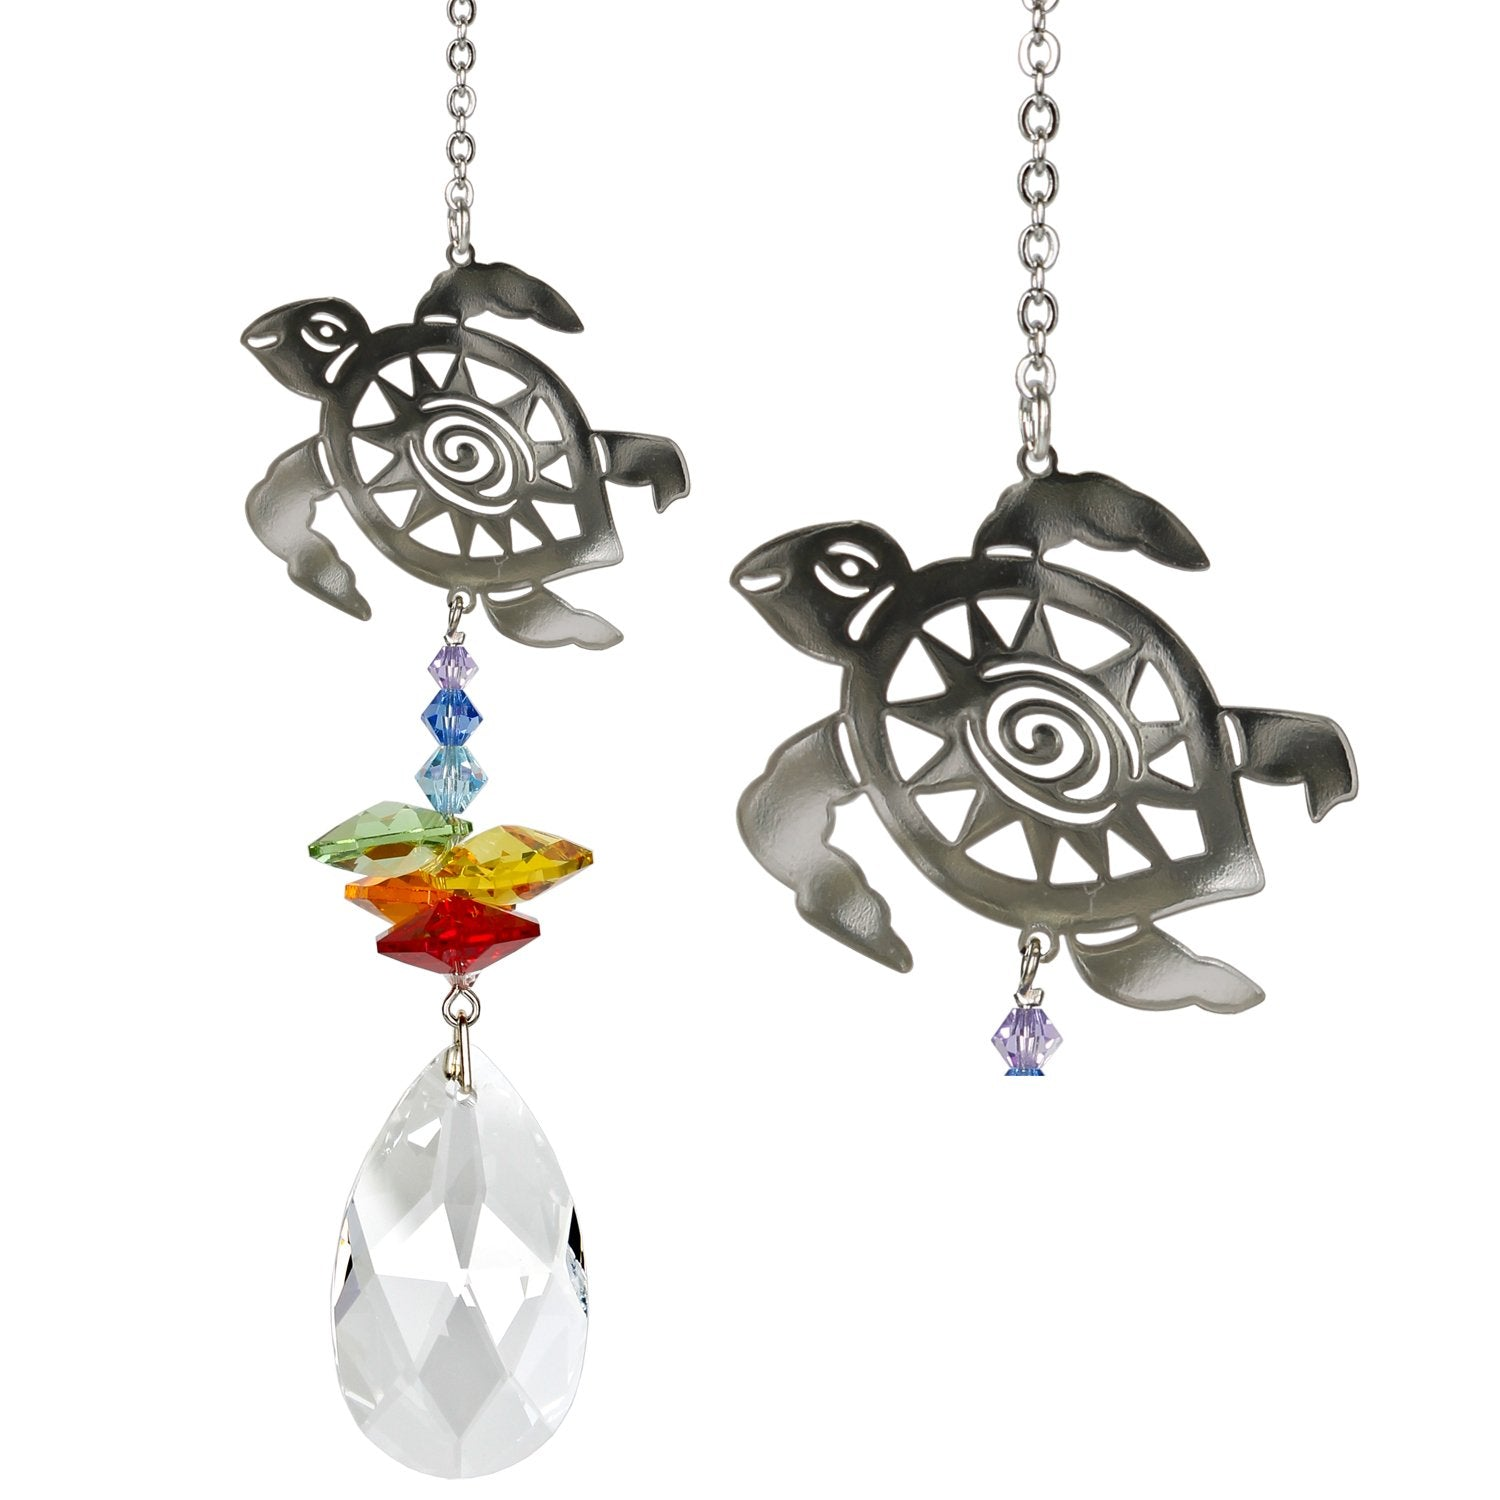 Crystal Fantasy Suncatcher - Turtle main image